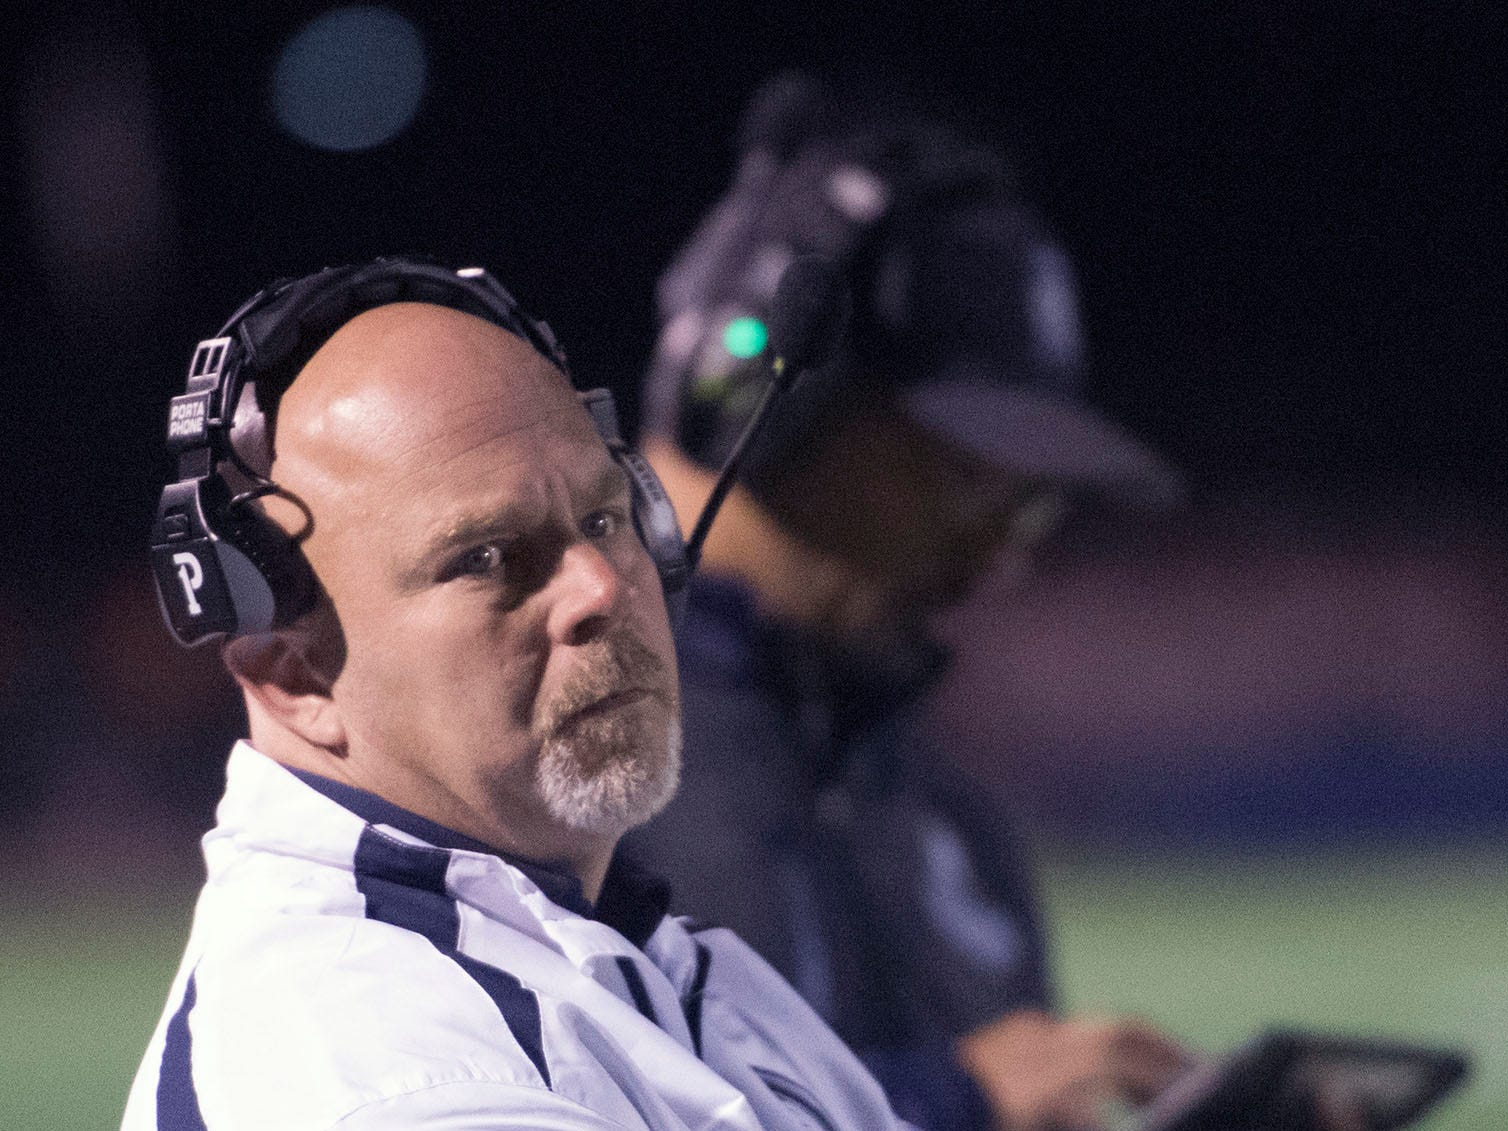 Mark Luther coaches the Chamberbsurg Trojans. Chambersburg lost to Central Dauphin in PIAA football on Friday, Oct. 19, 2018.